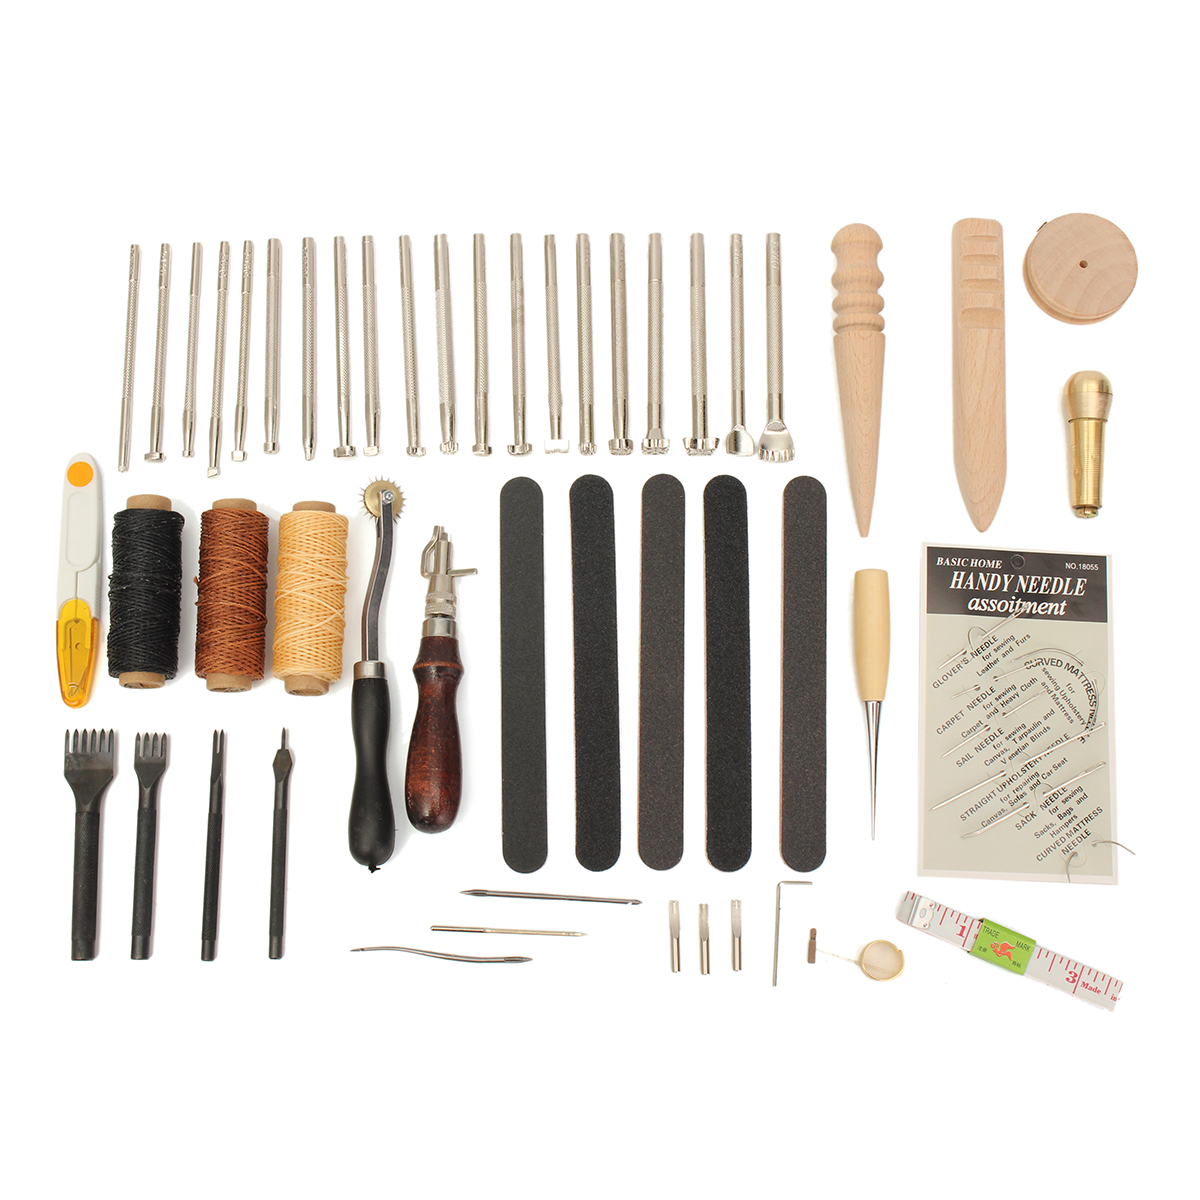 59 Pcs Leather Craft Hand Tools Kit For Hand Stitching/Sewing Stamping Set Kit